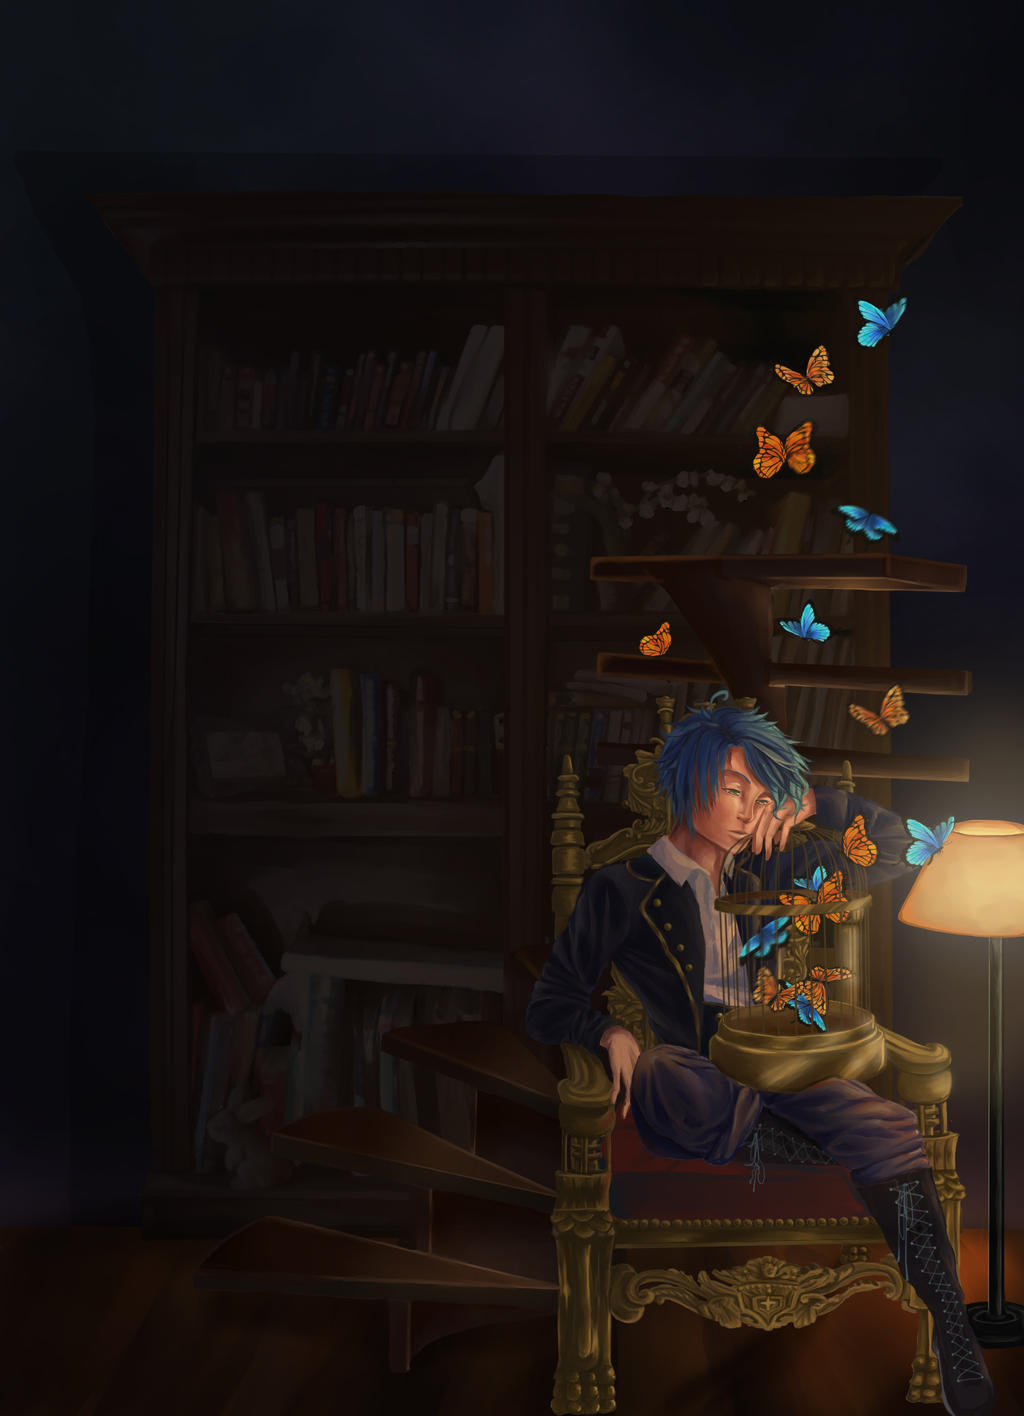 KH Come to the Library by Mamiru